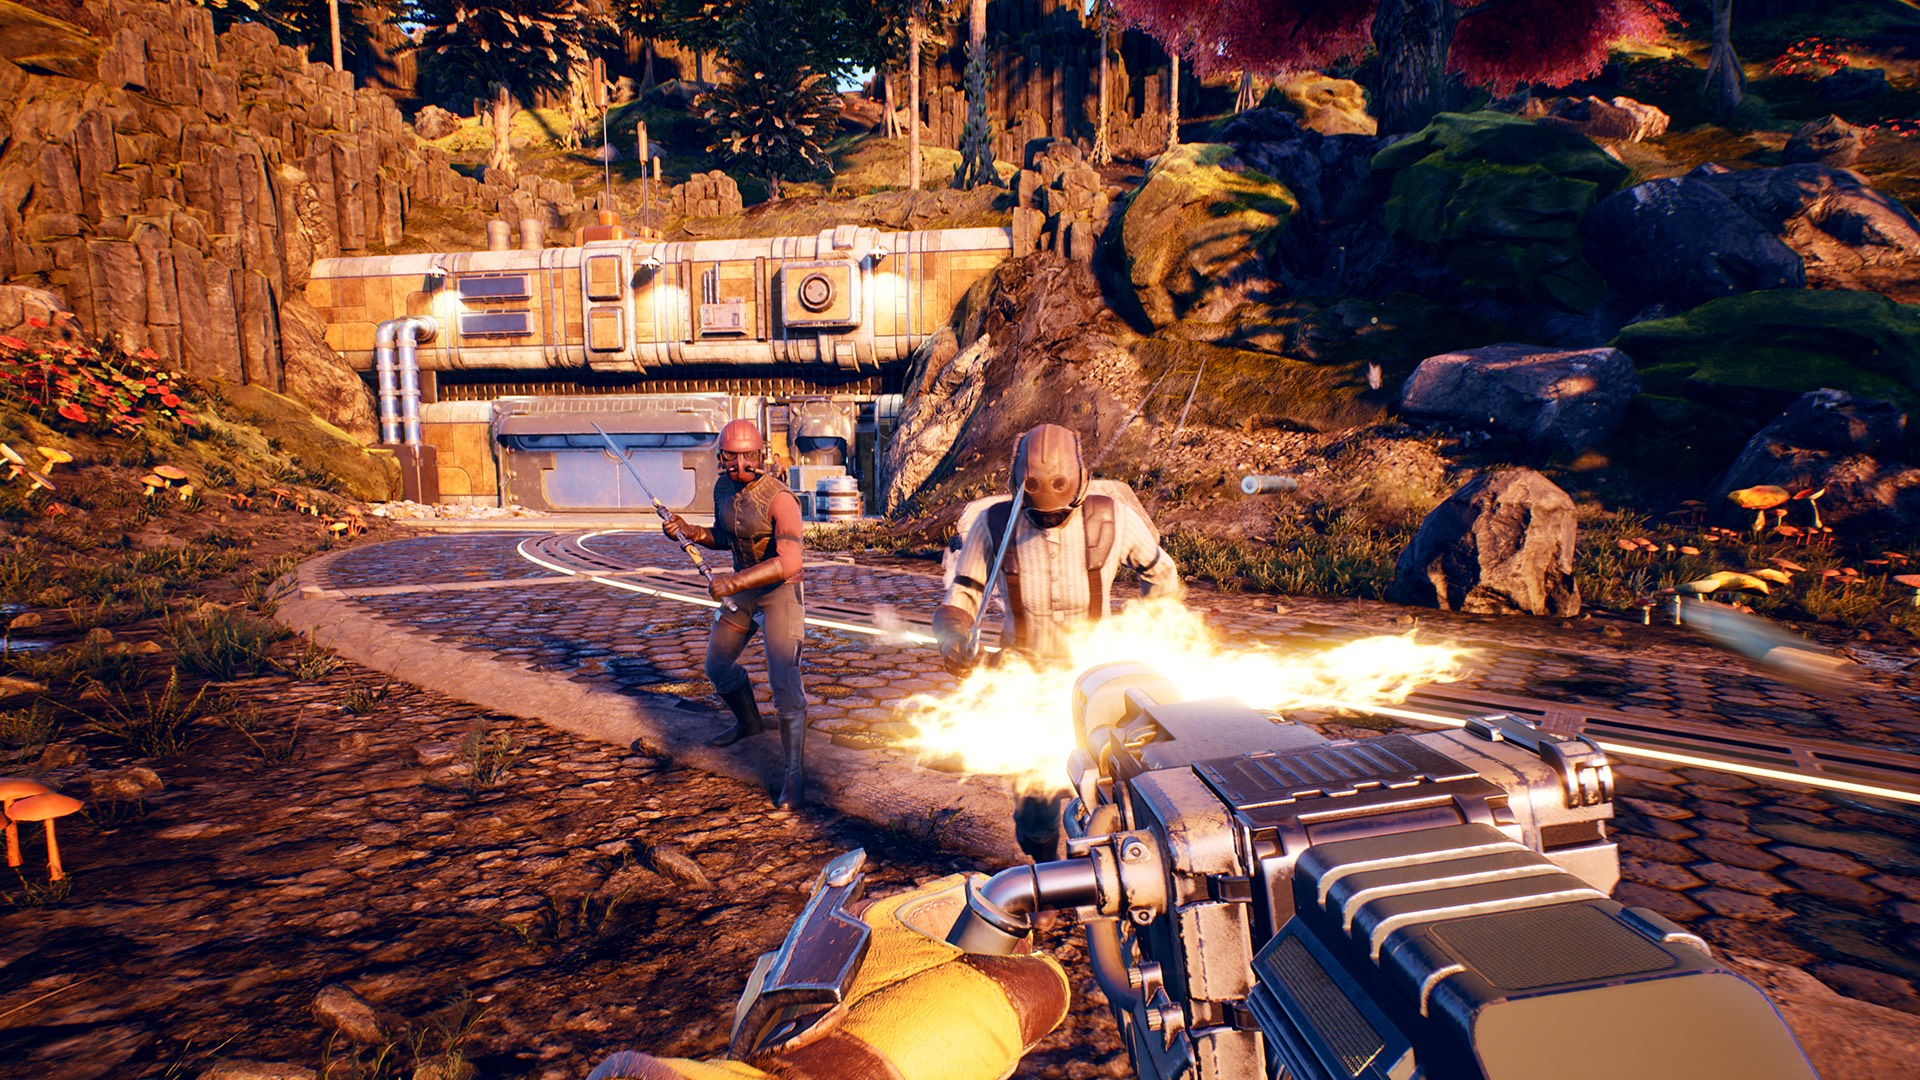 The Outer Worlds for MacBook gameplay